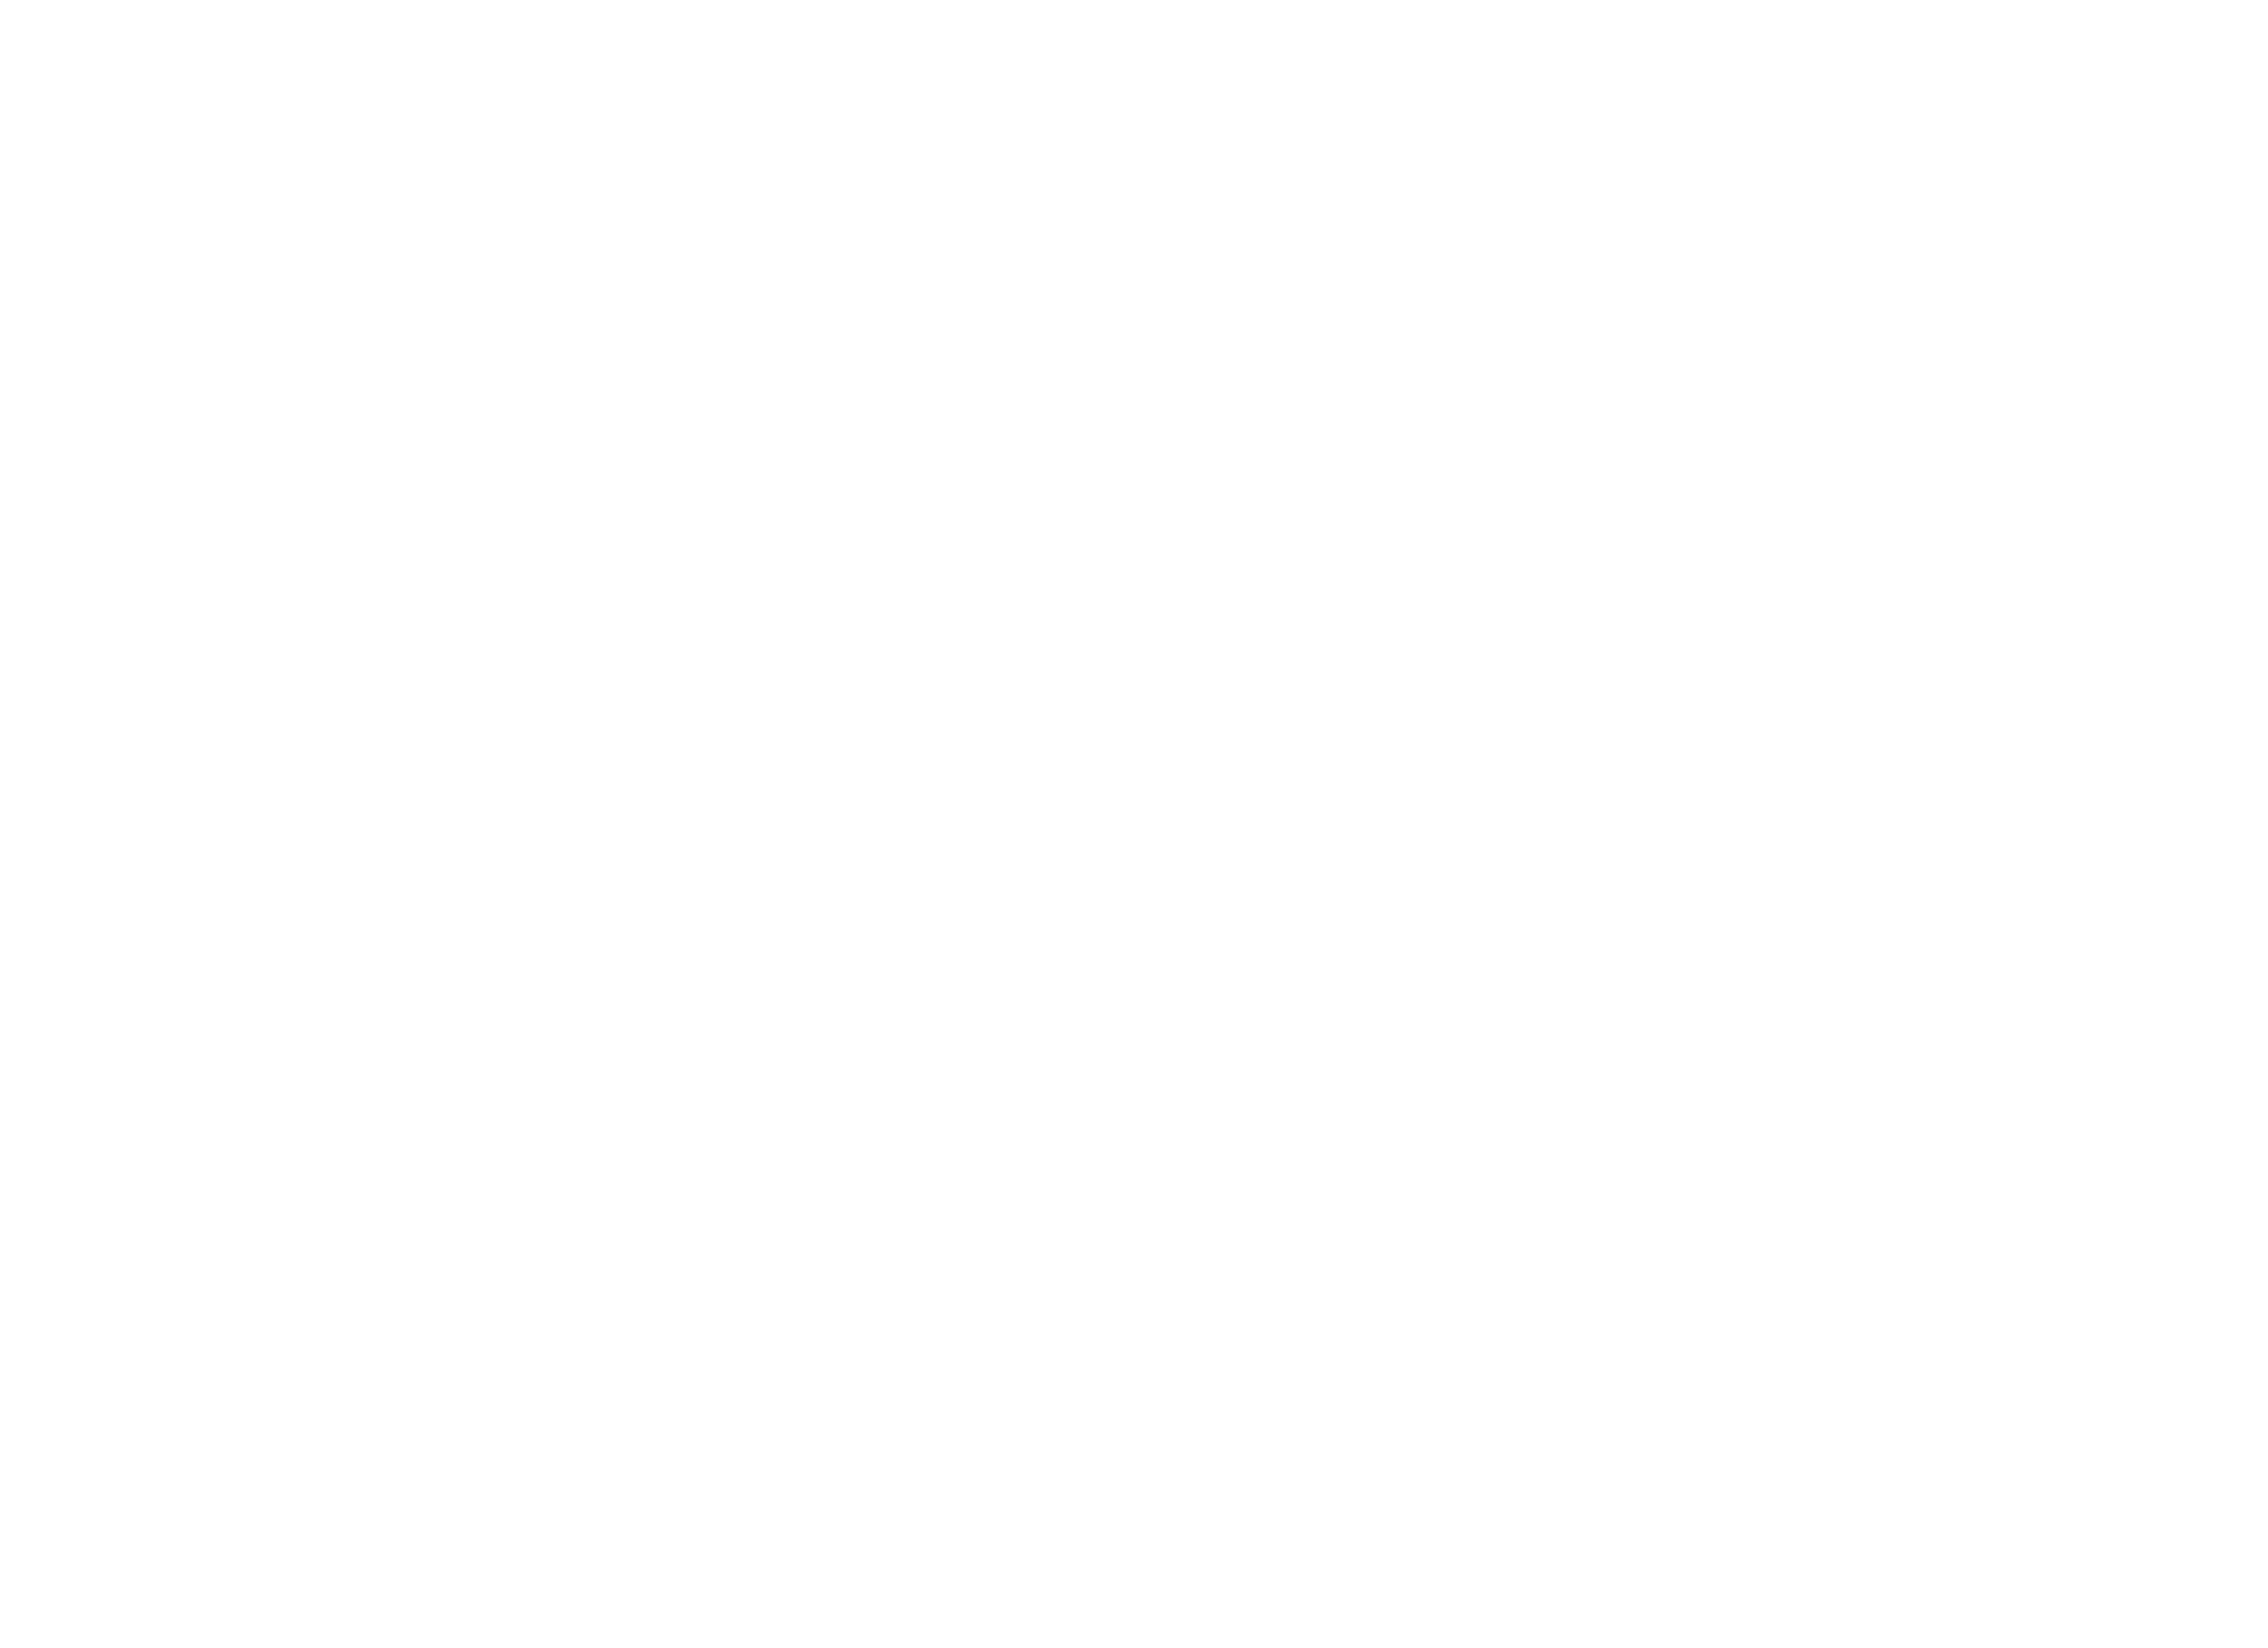 Ageless Beauty Texas_LOGO_white.png